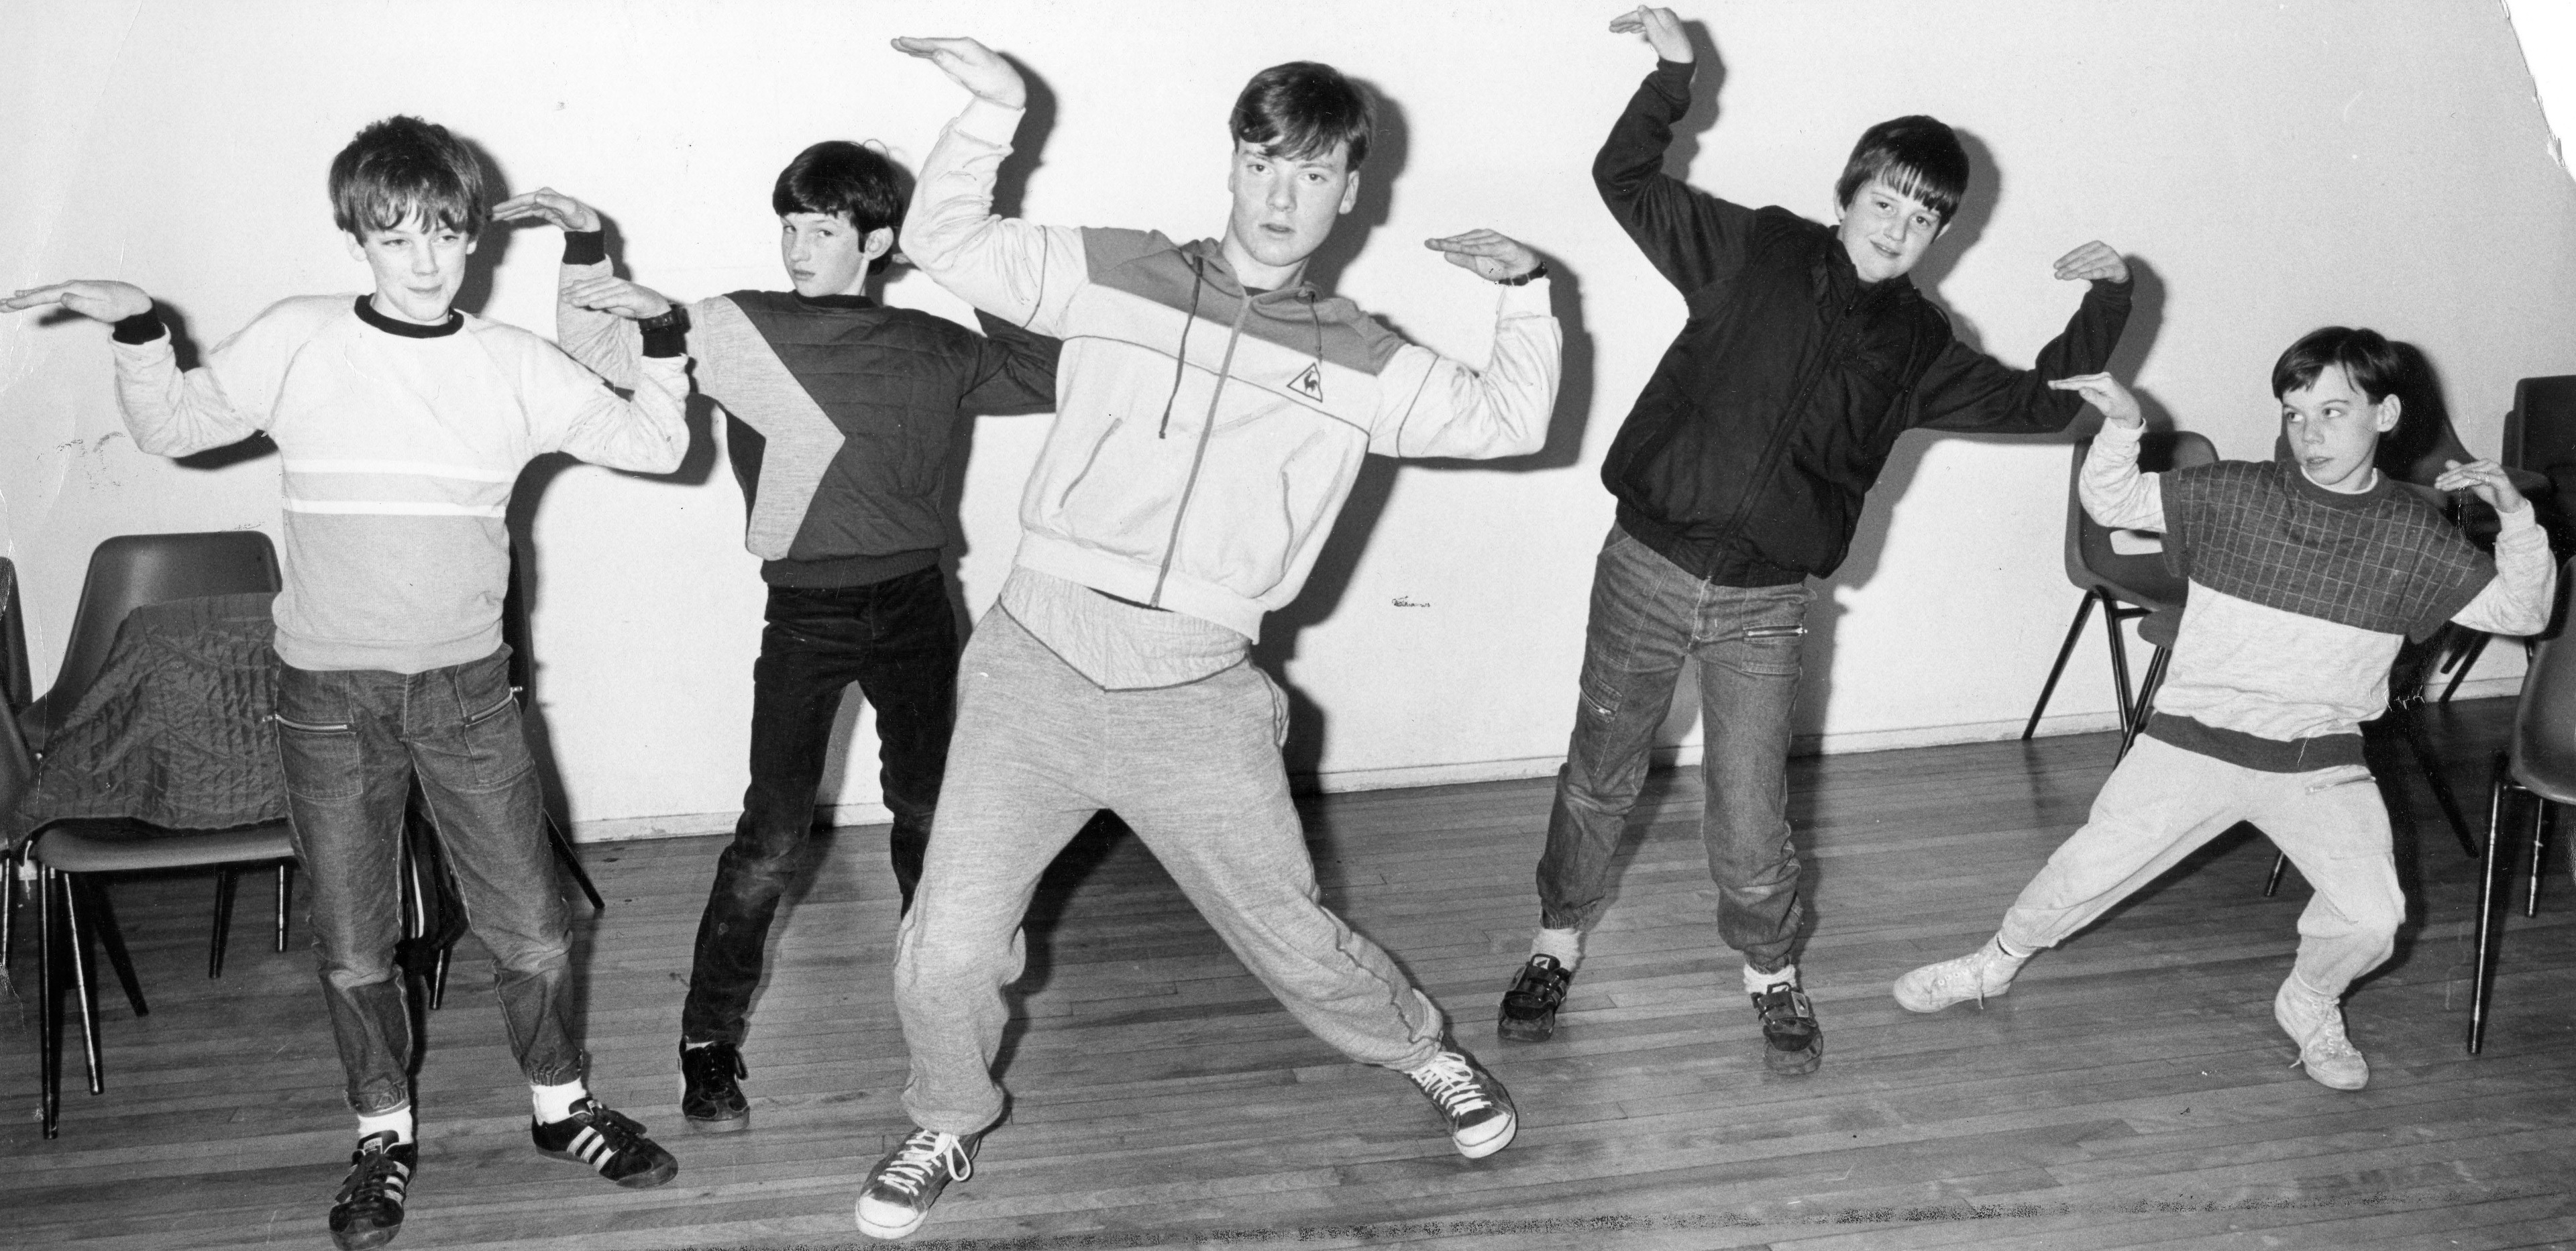 A break dancing class in 1985 at the Dudhope Art Cantre. Here we have (left to right) Stephen Veal, Thomas Black, Rab Clark, Forbes Taylor and Lee Duffy busting some moves.